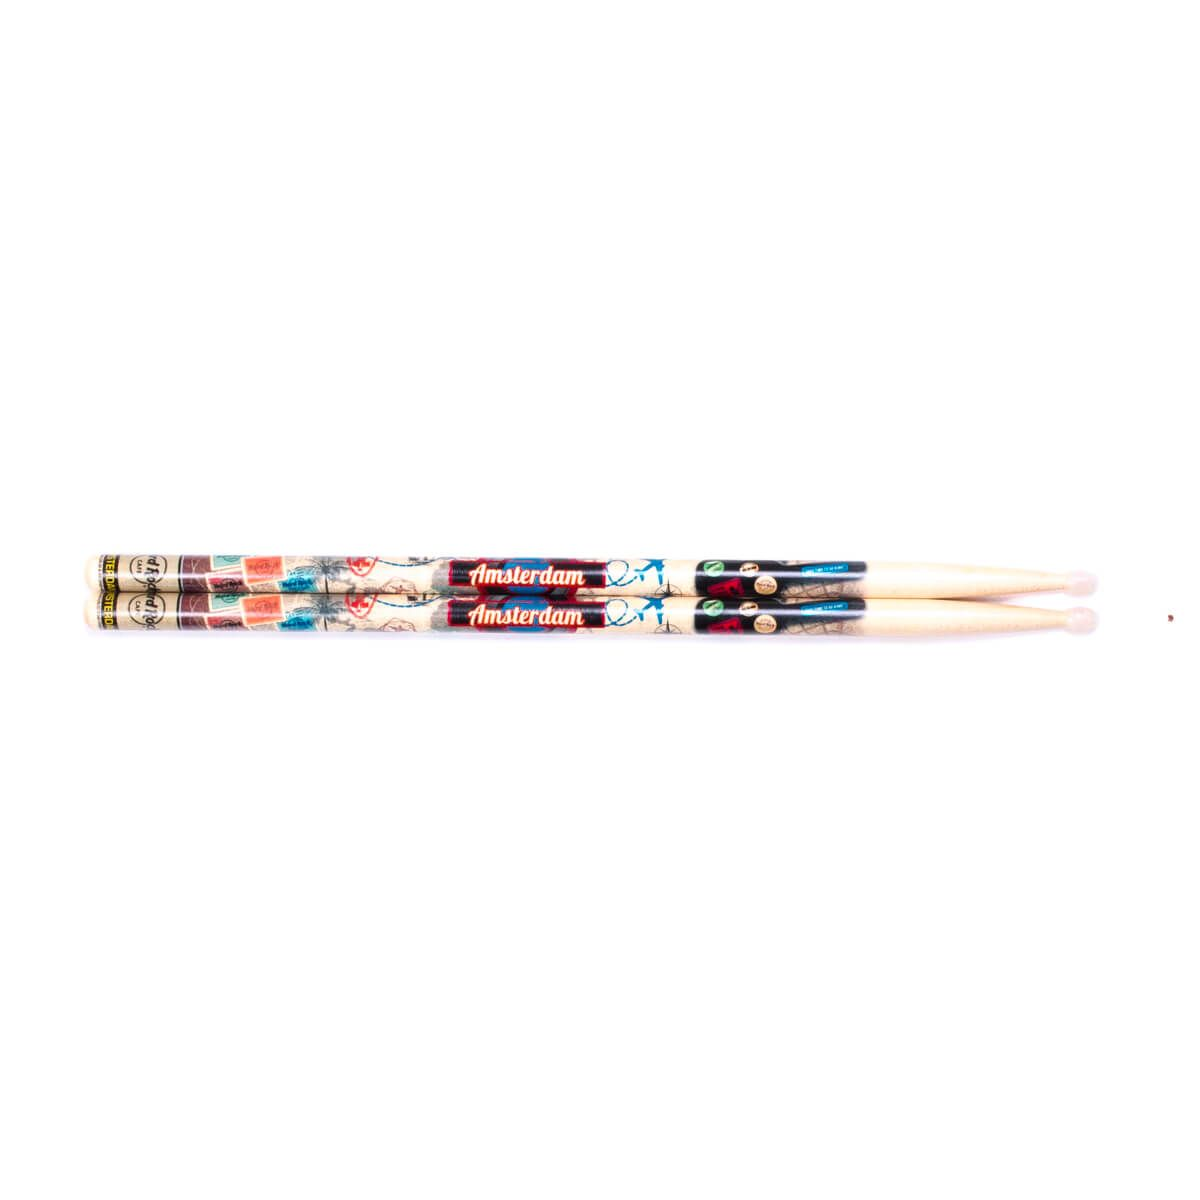 World Traveler Drumsticks